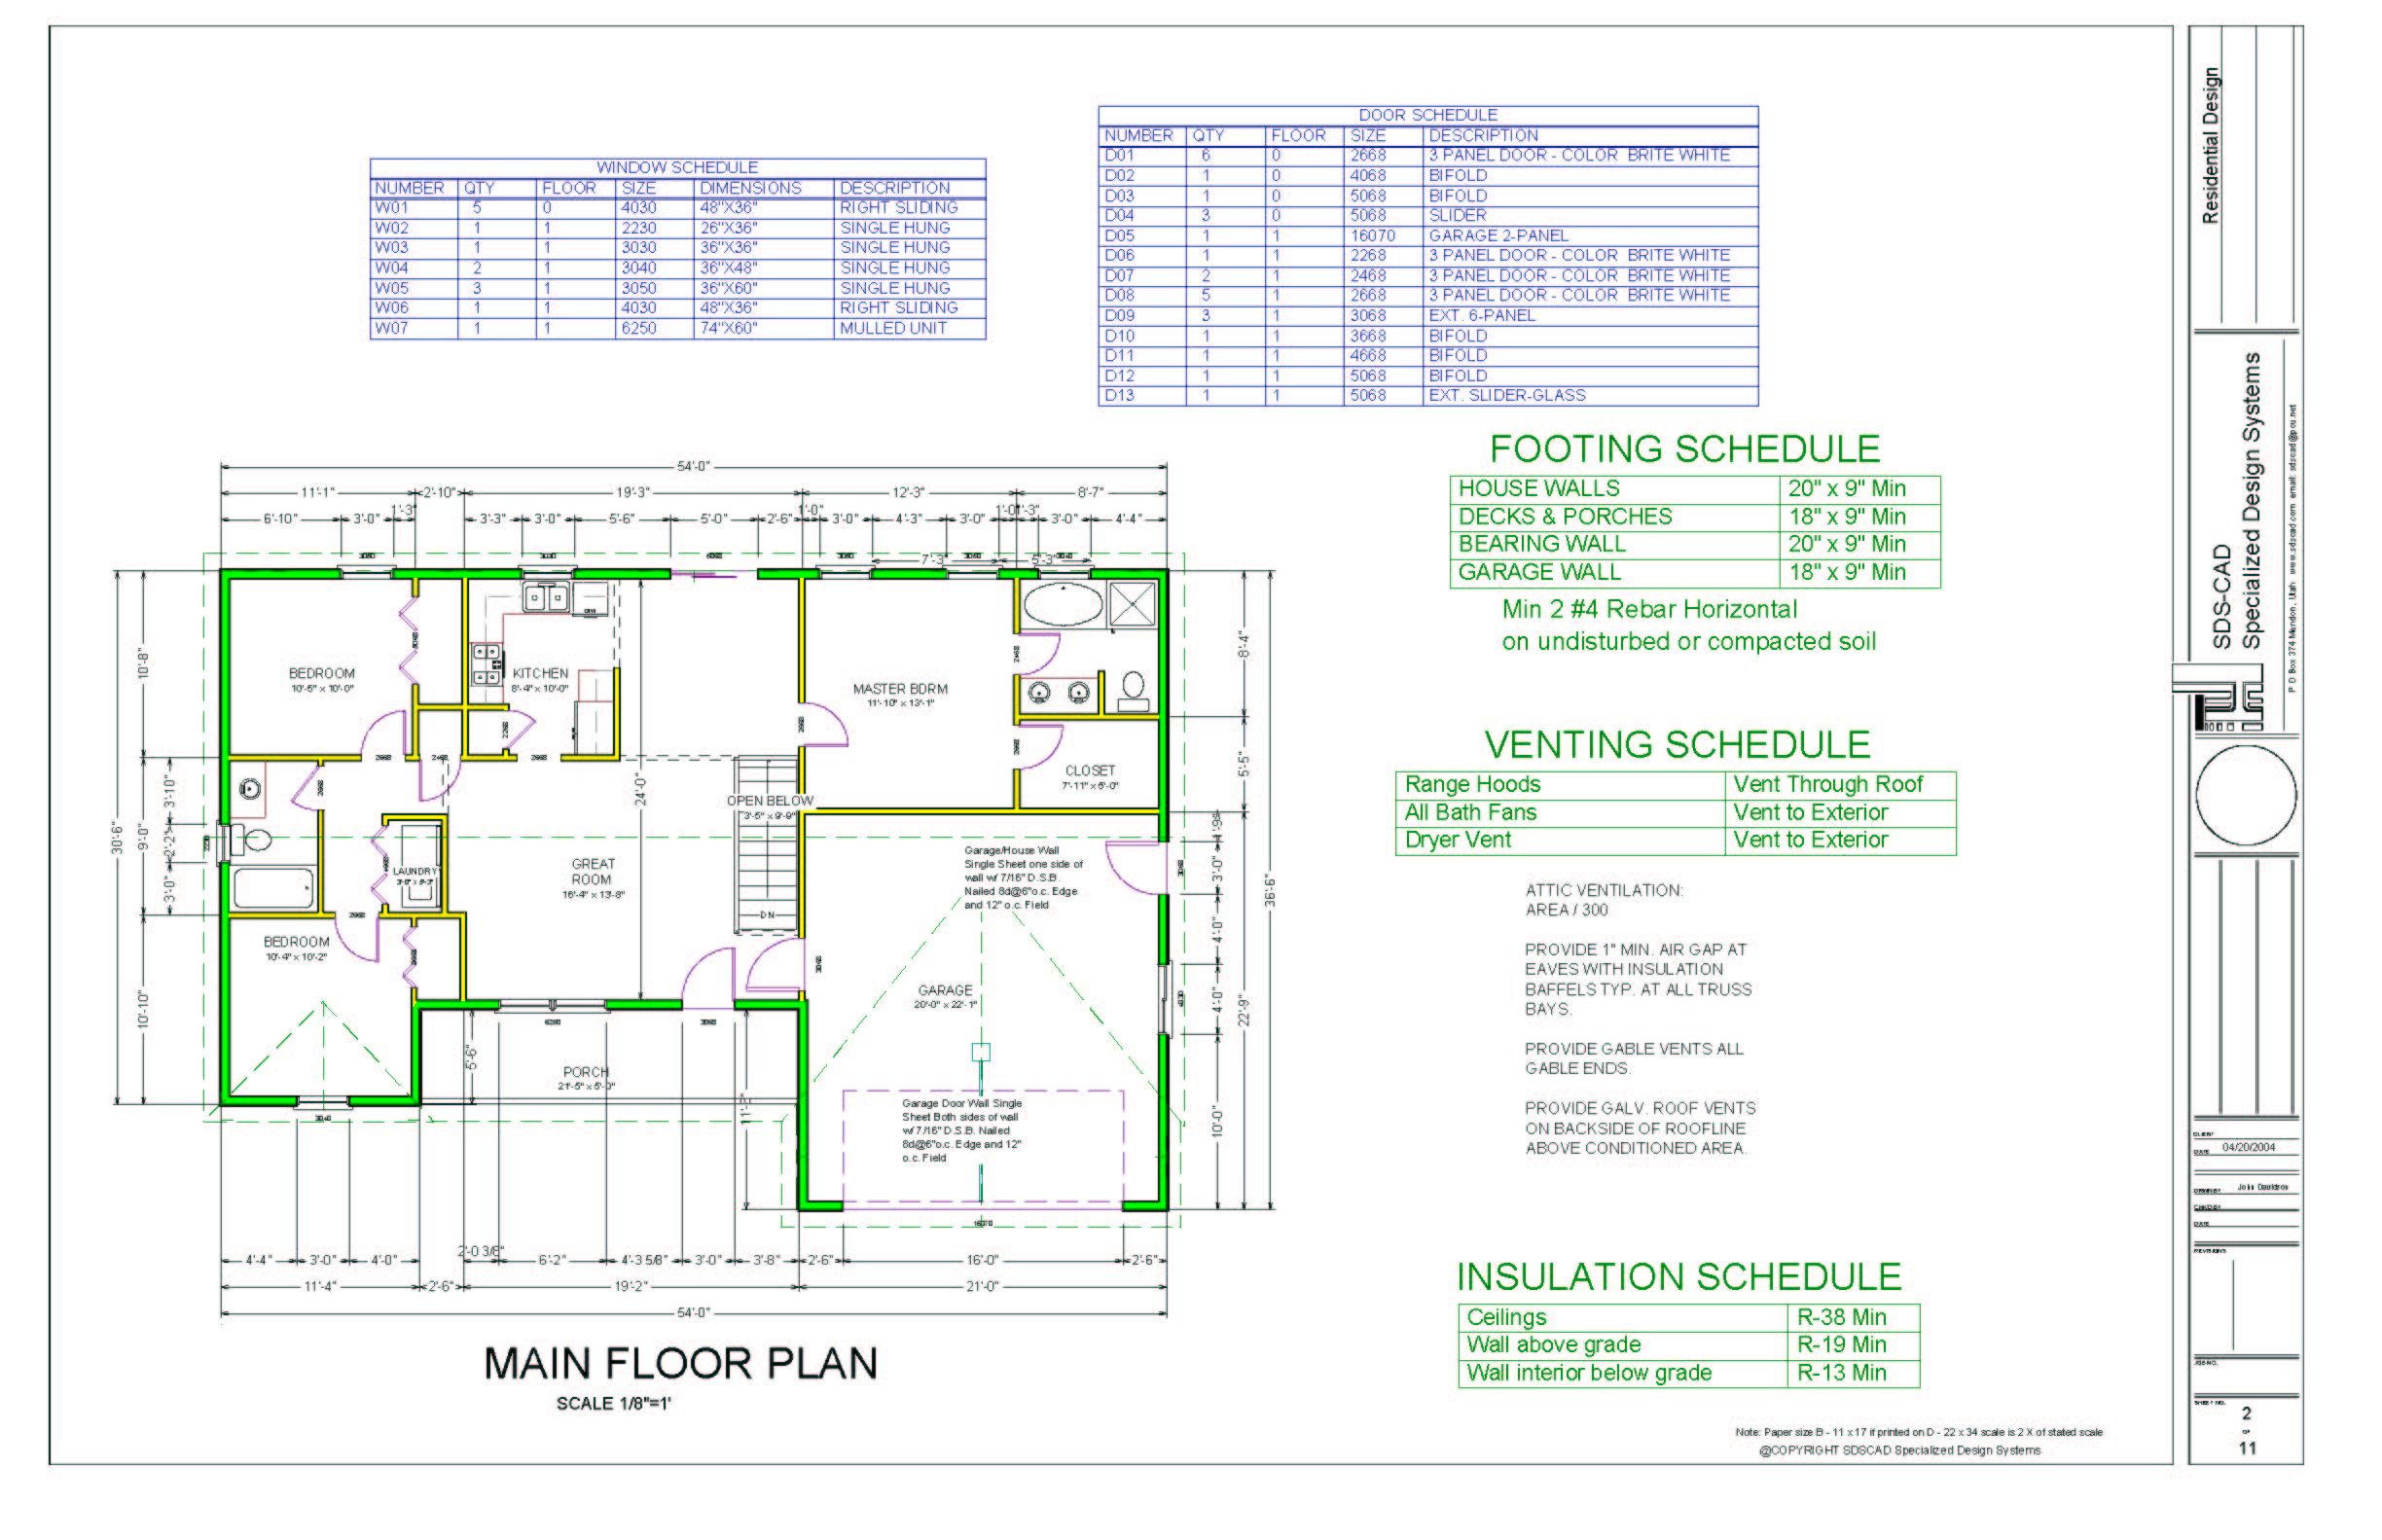 Home design blueprint maker architecture software plant layout plans home design blueprint maker architecture software plant layout plans warehouse with malvernweather